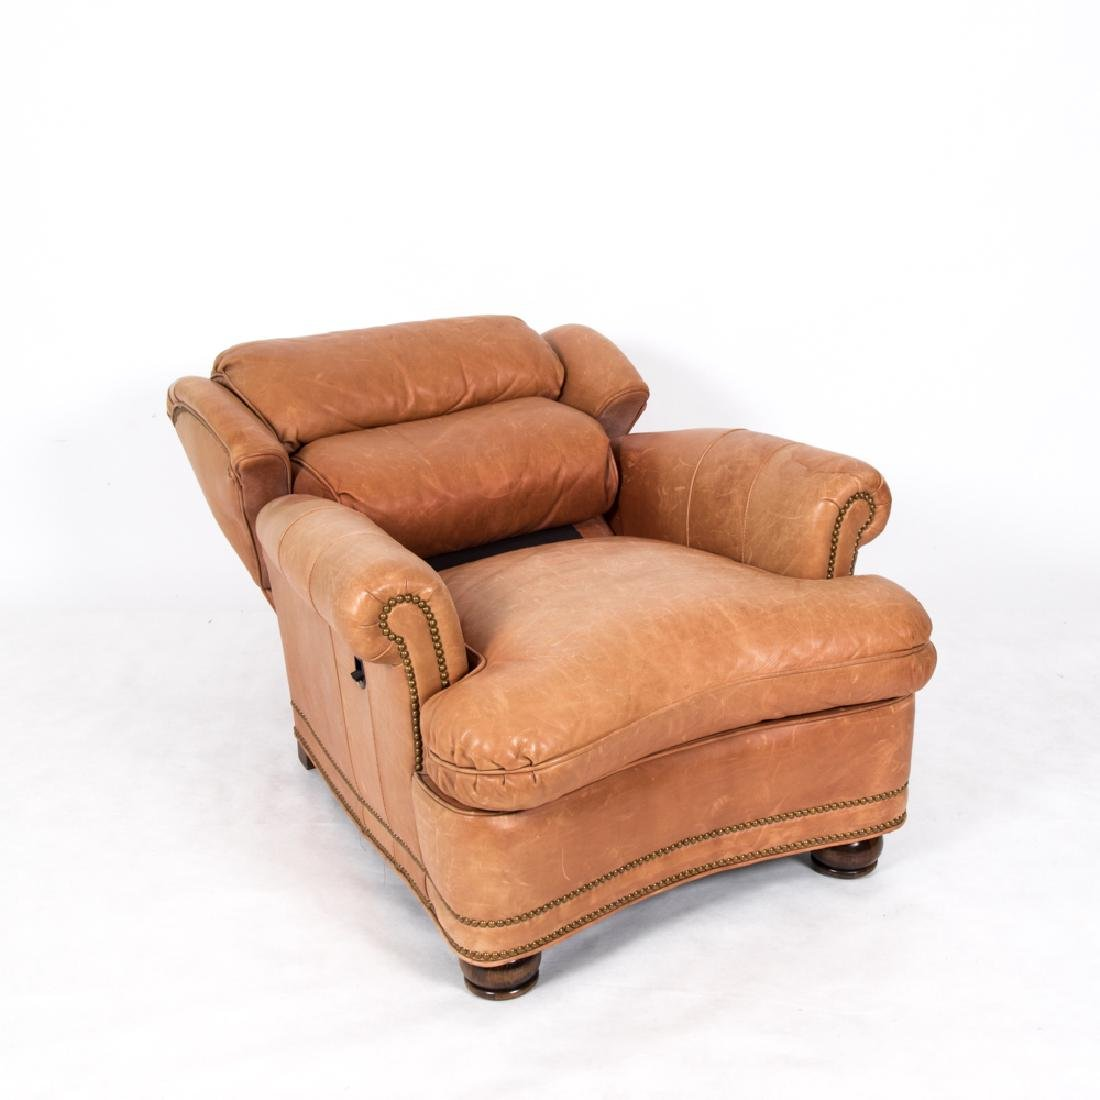 A Hancock and Moore Leather Upholstered Reclining - 5